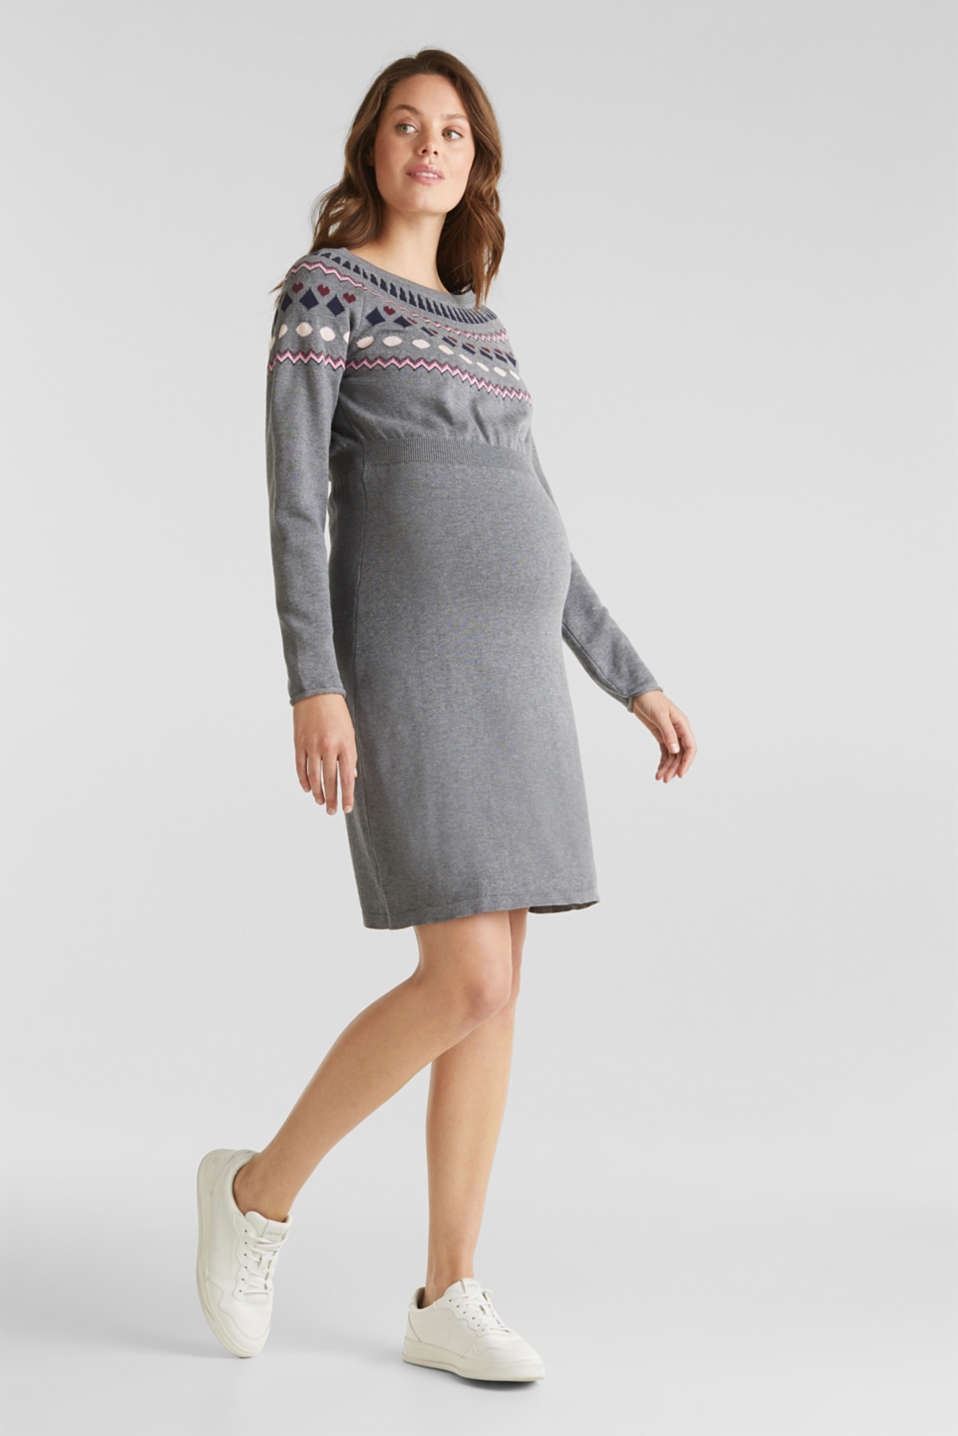 Knit dress with a jacquard pattern, LCMEDIUM GREY ME, detail image number 1